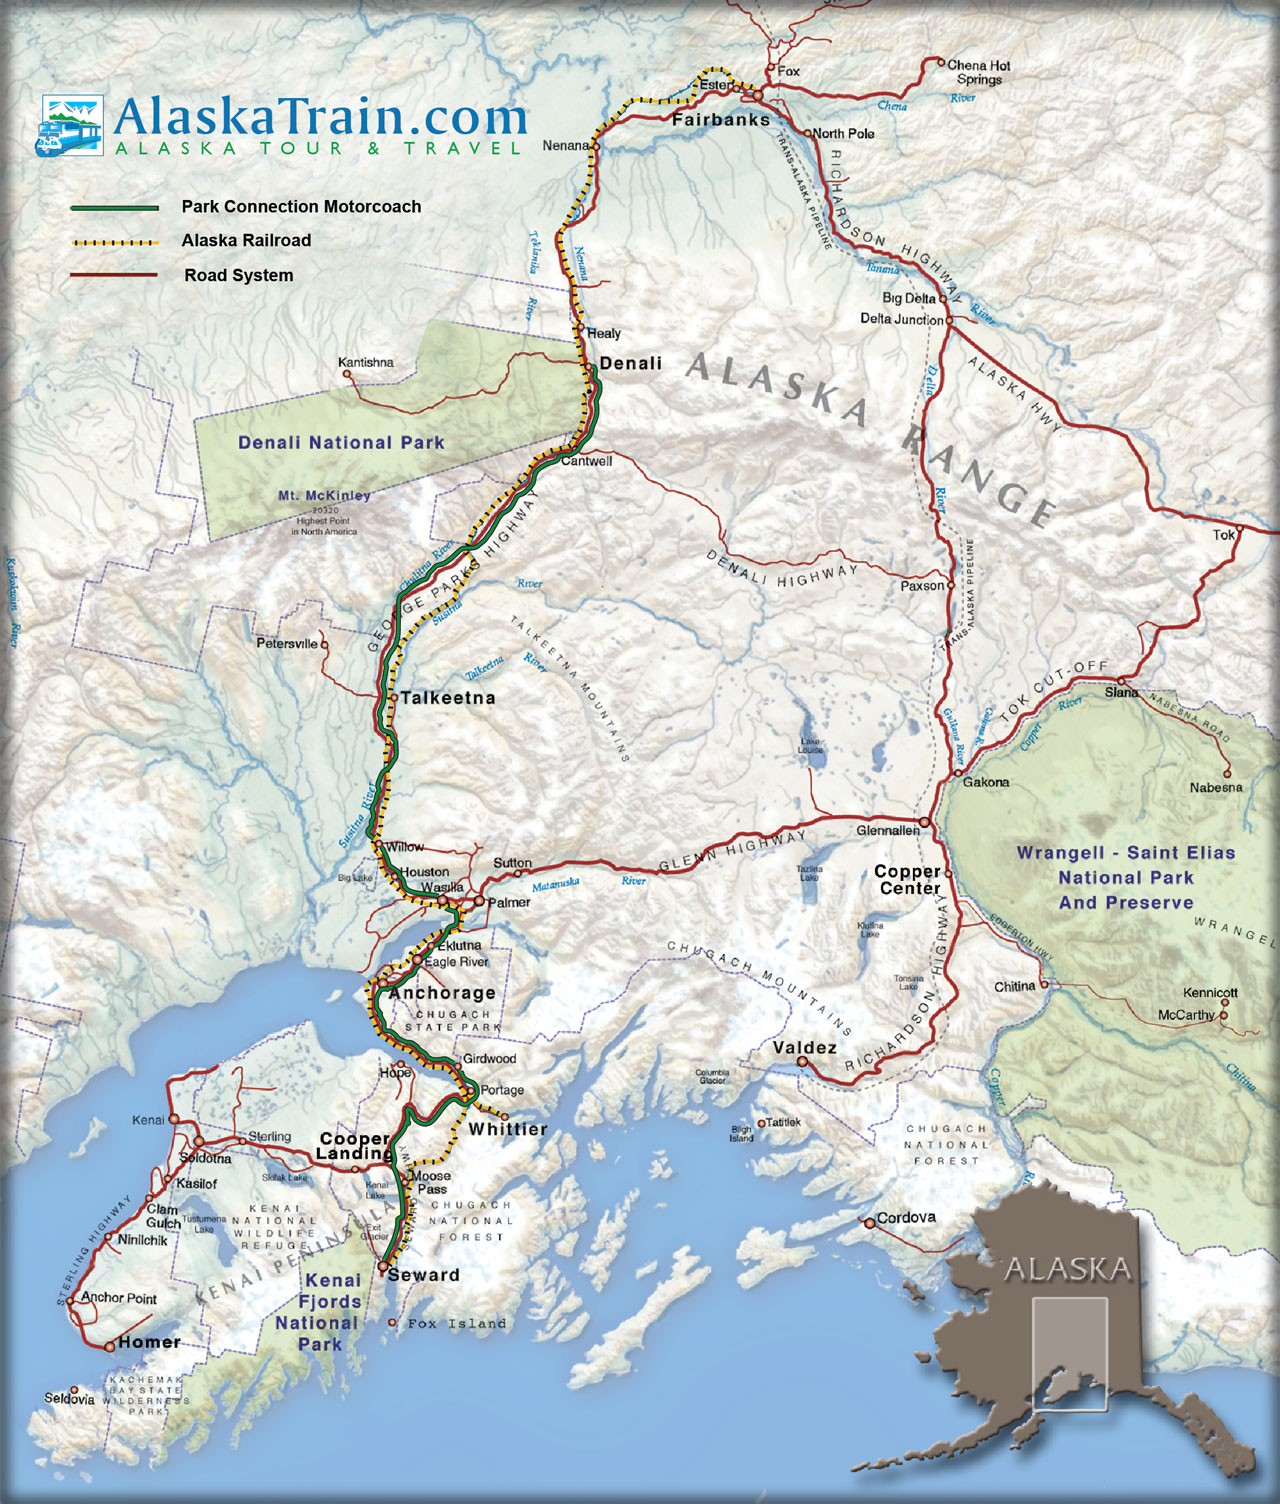 Alaska Railroad Map, Alaska Train Maps | AlaskaTrain.com on u.s. manufacturing map, u.s. world map, u.s. earthquake map, u.s. airport map, u.s. agriculture map, u.s. oil refineries map, u.s. fire map, pre civil war railroads map, u.s. military map, u.s. immigration map, u.s.a map, mexican american civil war map, u.s. elevation map, u.s. airline map, u.s. forest map, u.s. rainfall map, u.s. highway map, u.s. temperature map, ne north carolina map, 1879 united states map,